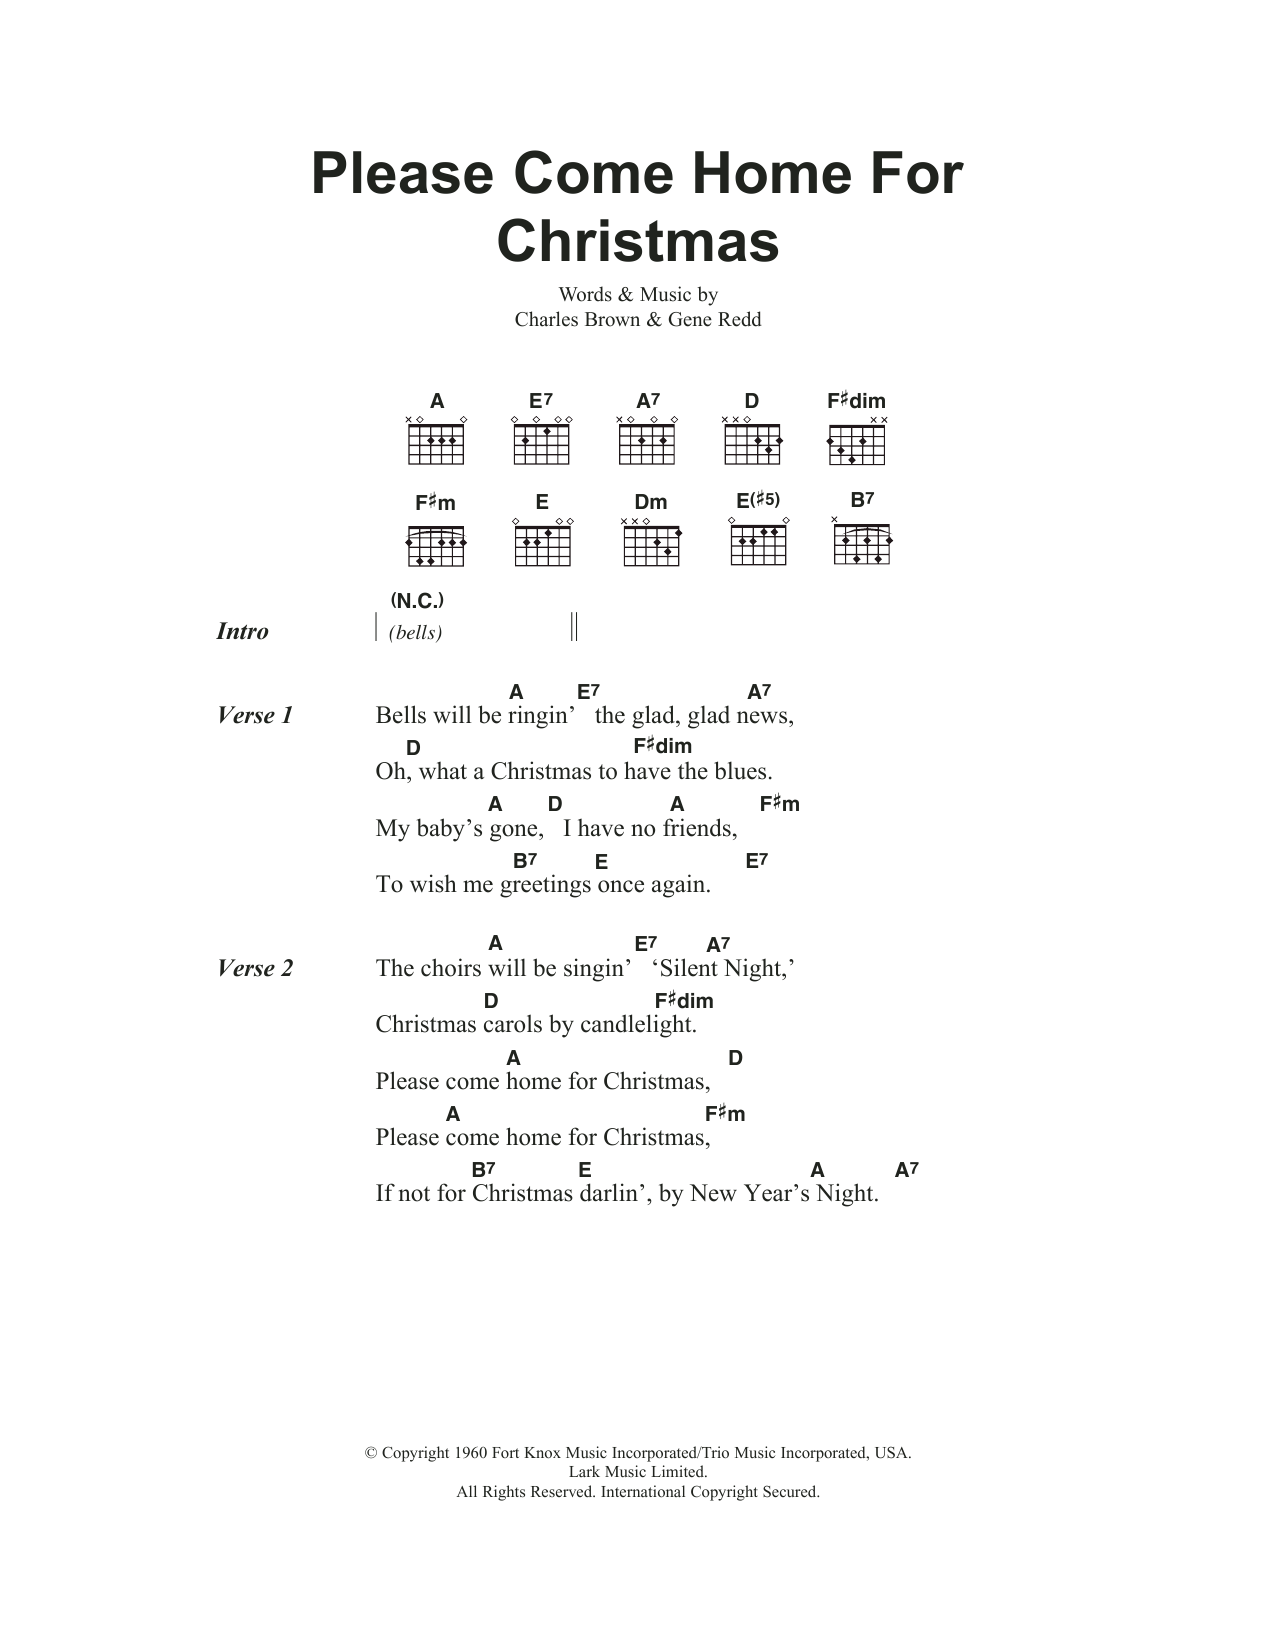 Eagles Come Home For Christmas.Eagles Please Come Home For Christmas At Stanton S Sheet Music